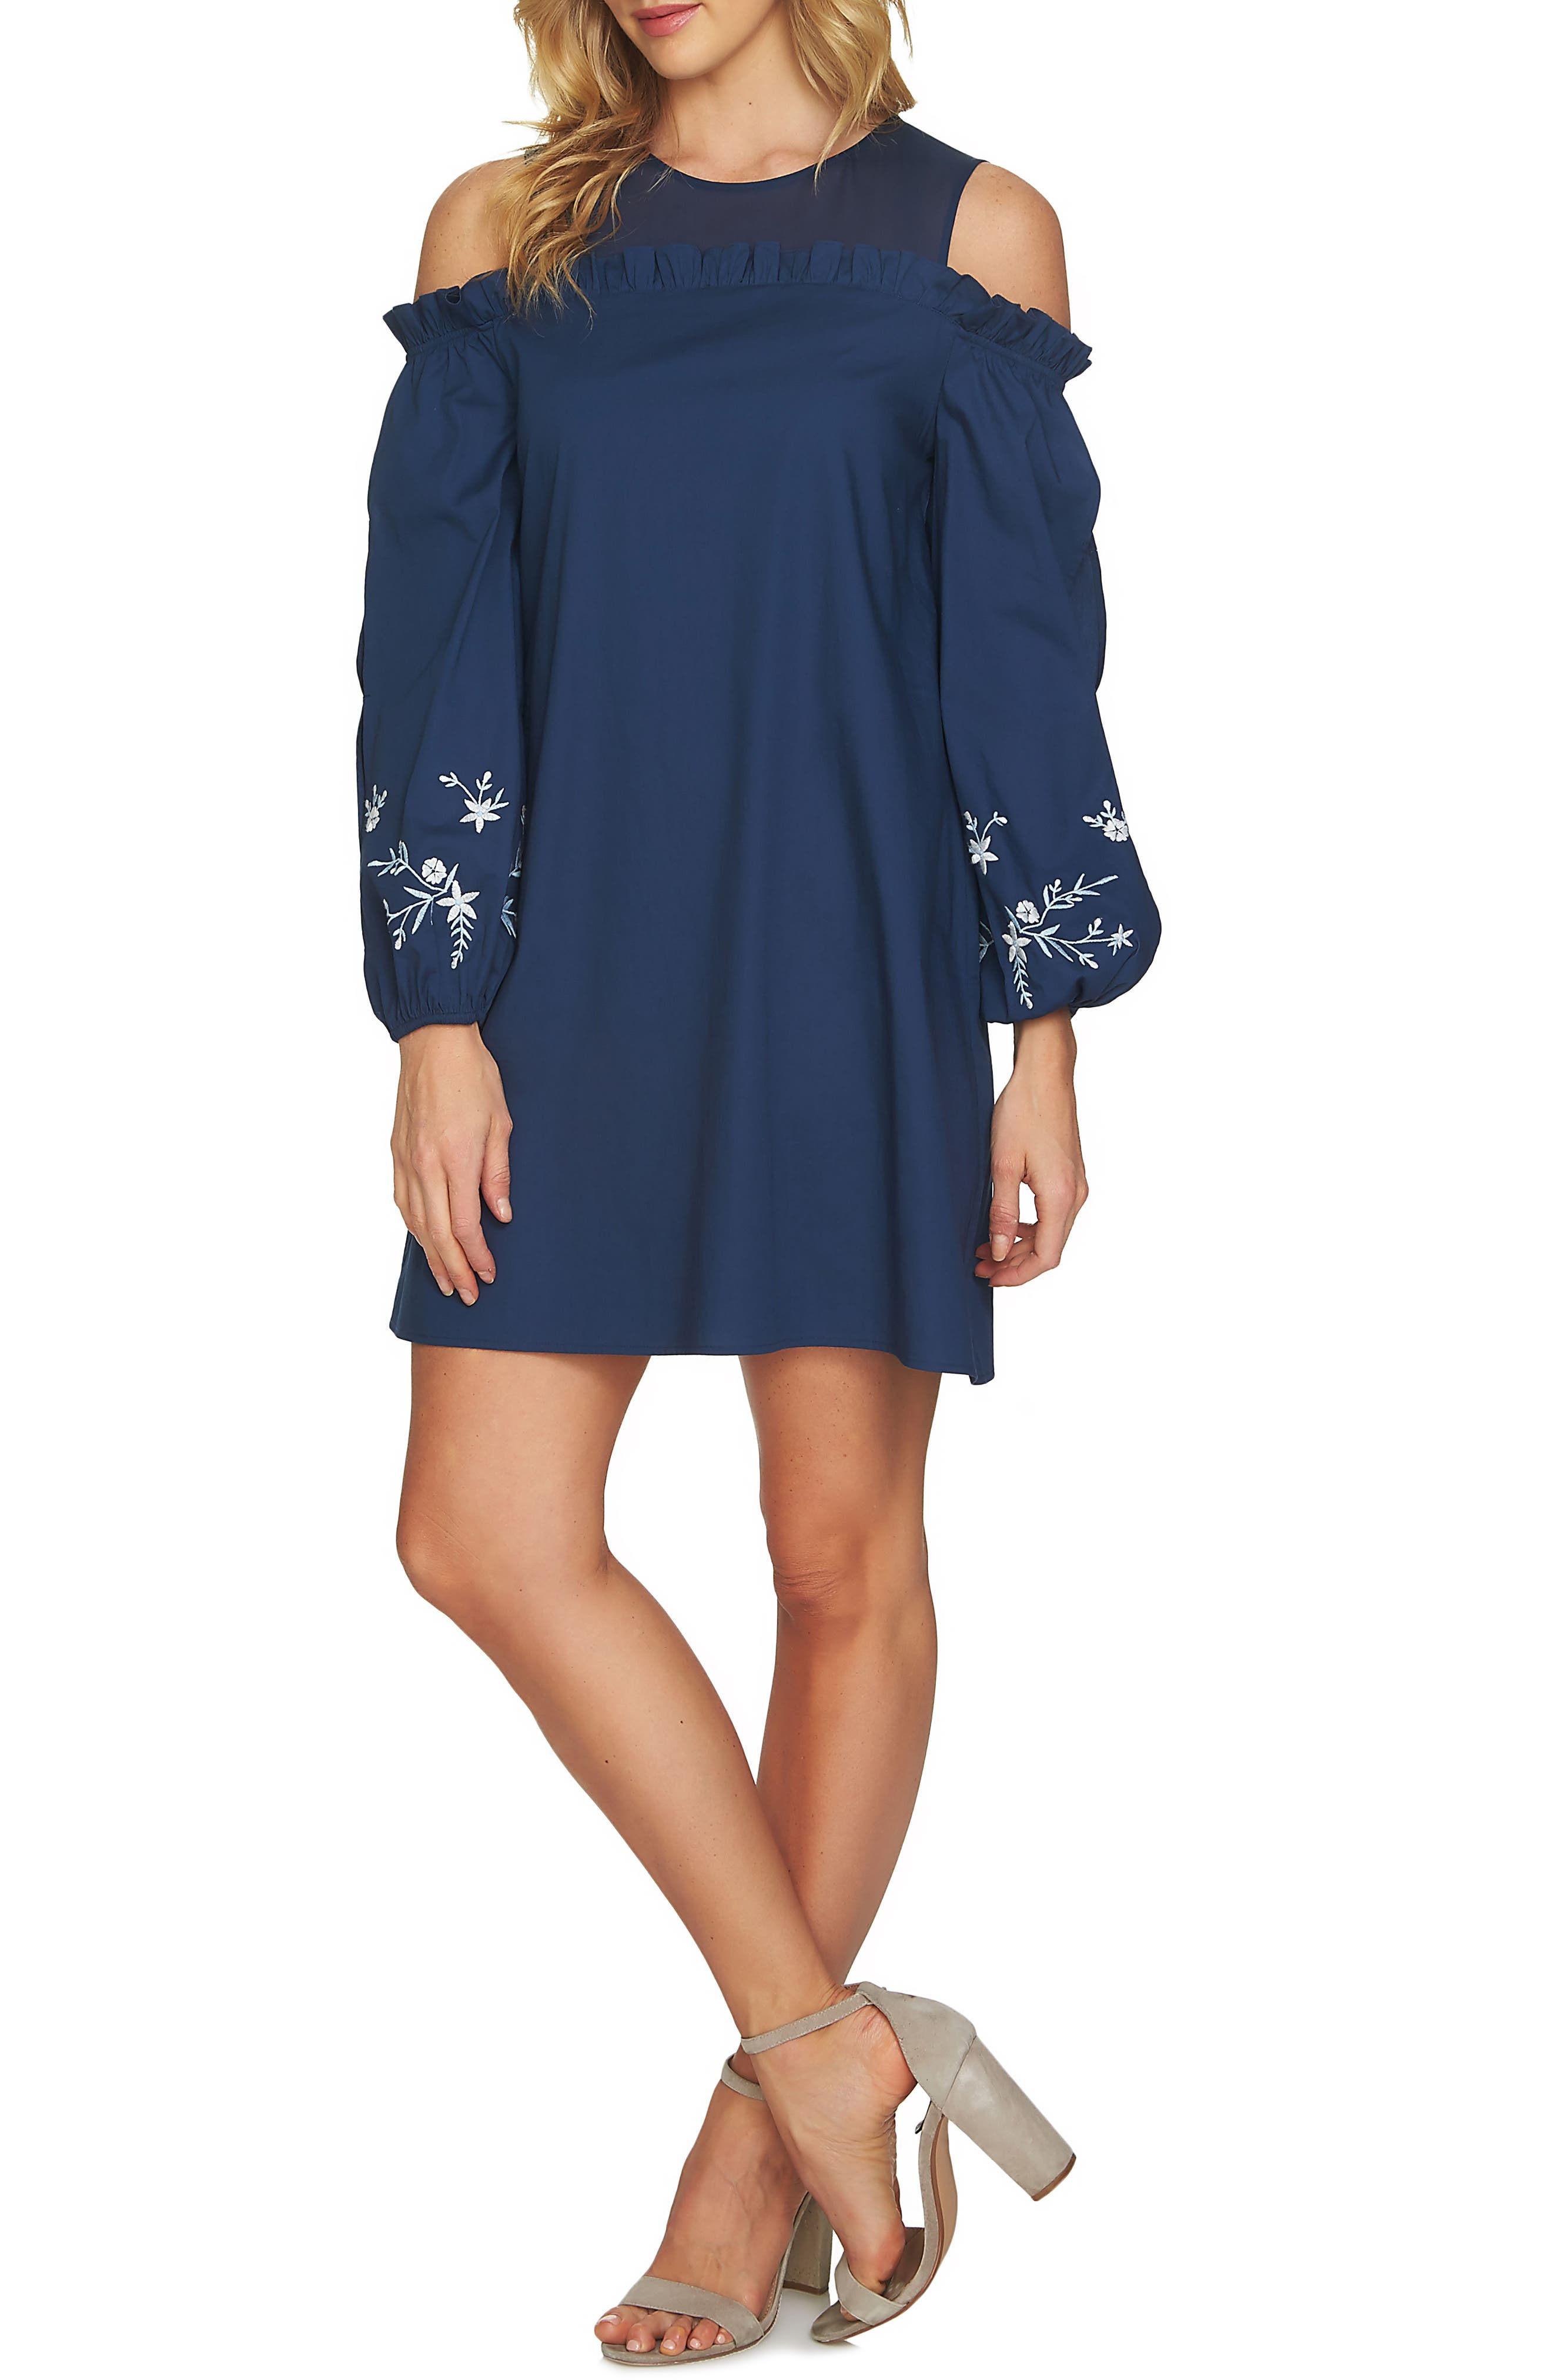 Cold Shoulder Embroidered Shift Dress,                             Main thumbnail 1, color,                             Indigo Sky